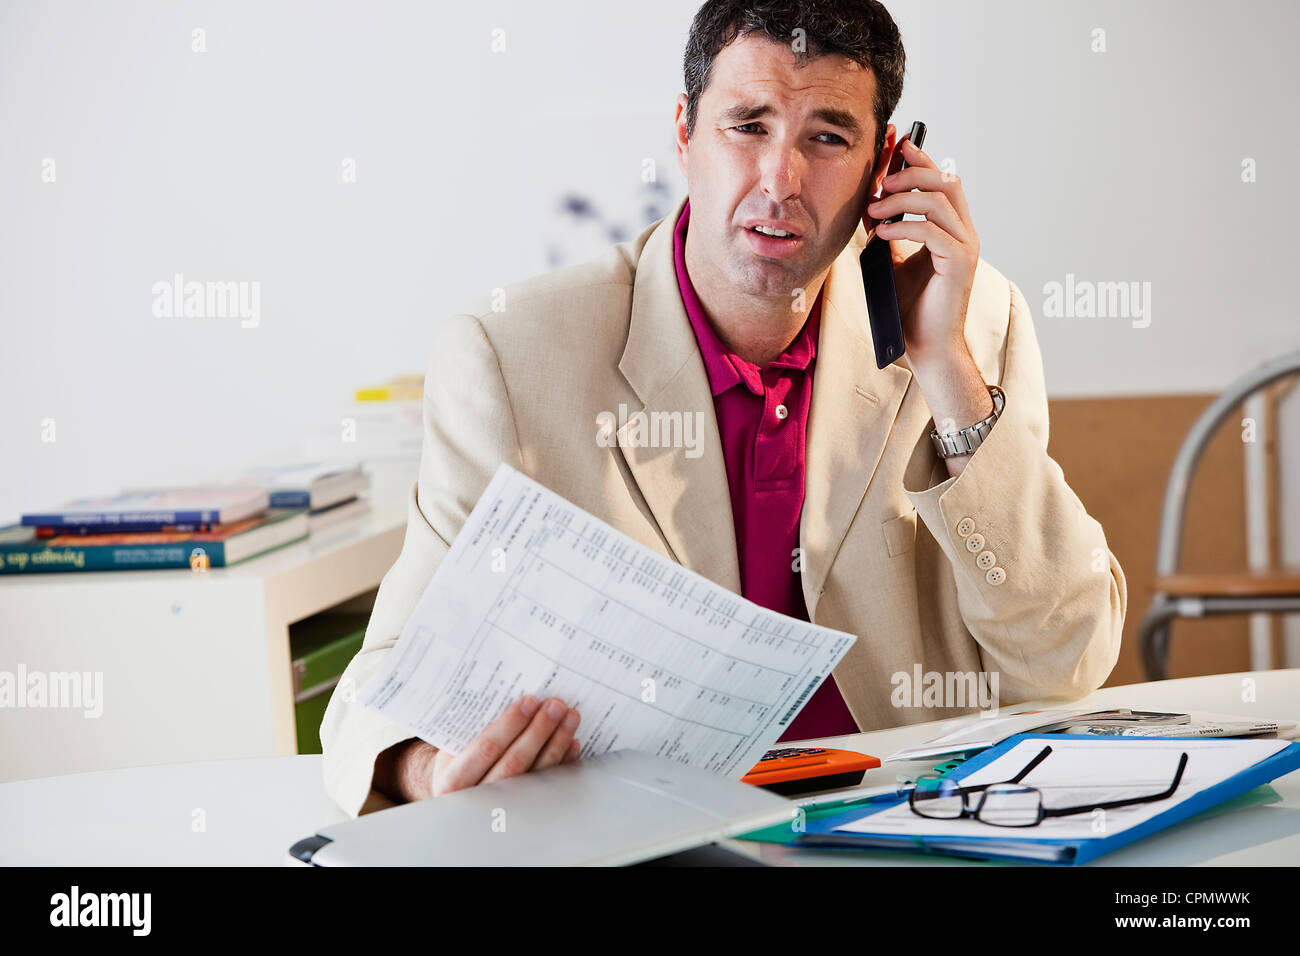 MAN FILLING OUT FORMS - Stock Image